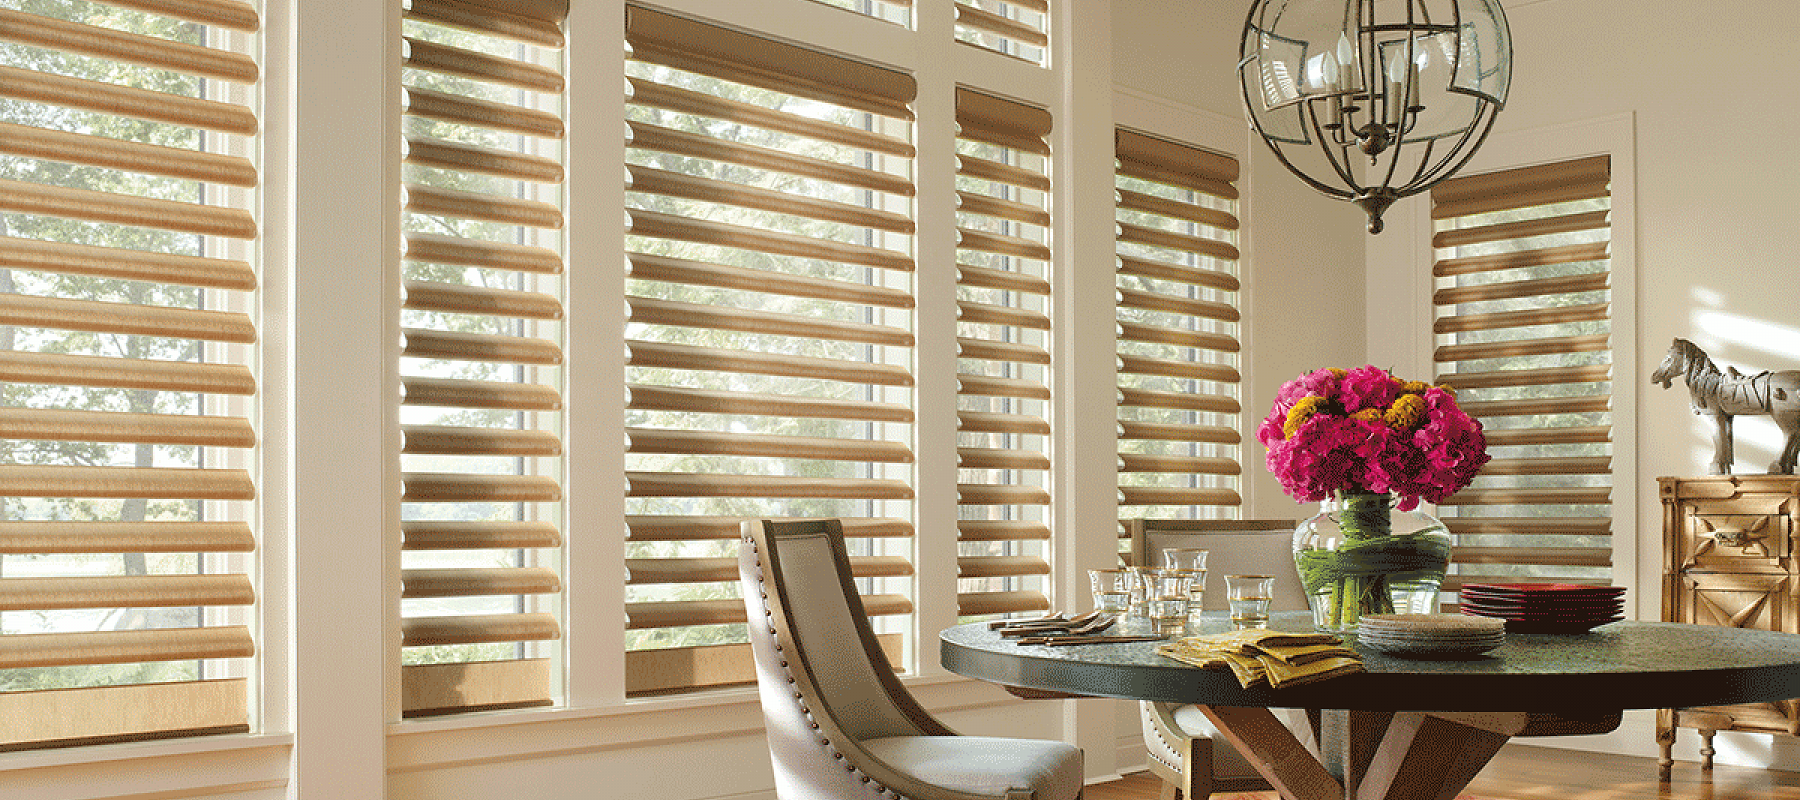 What Everyone Should Know about Window Treatments - Part II